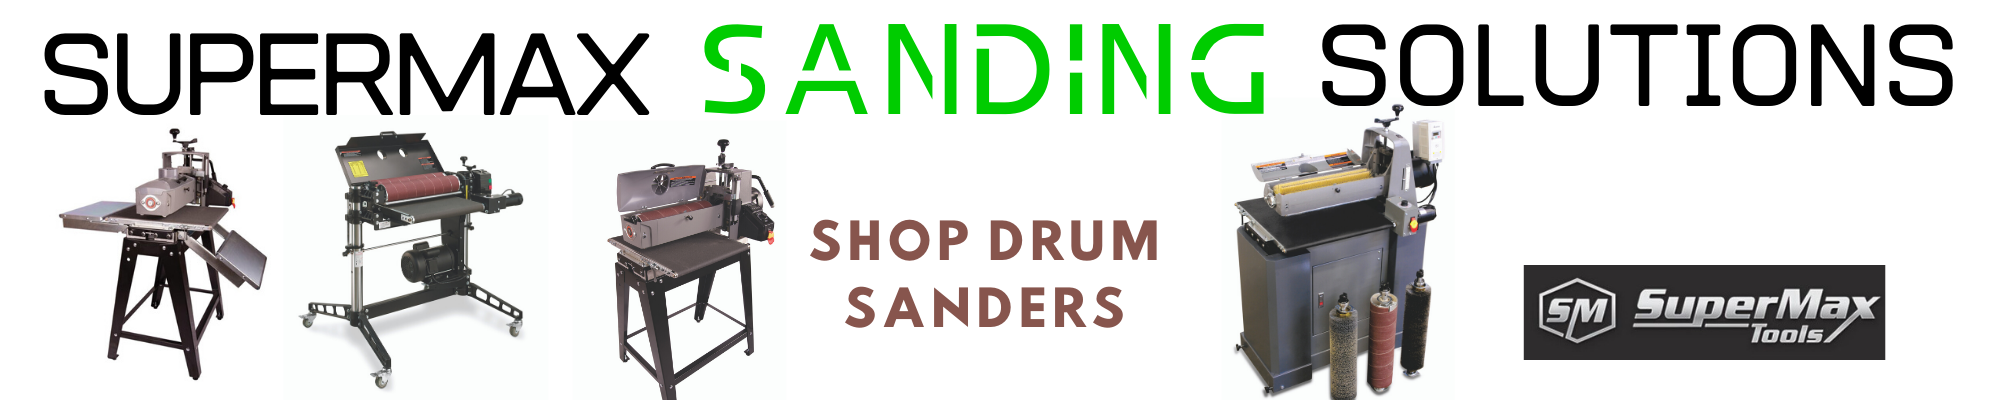 Supermax drum sanders